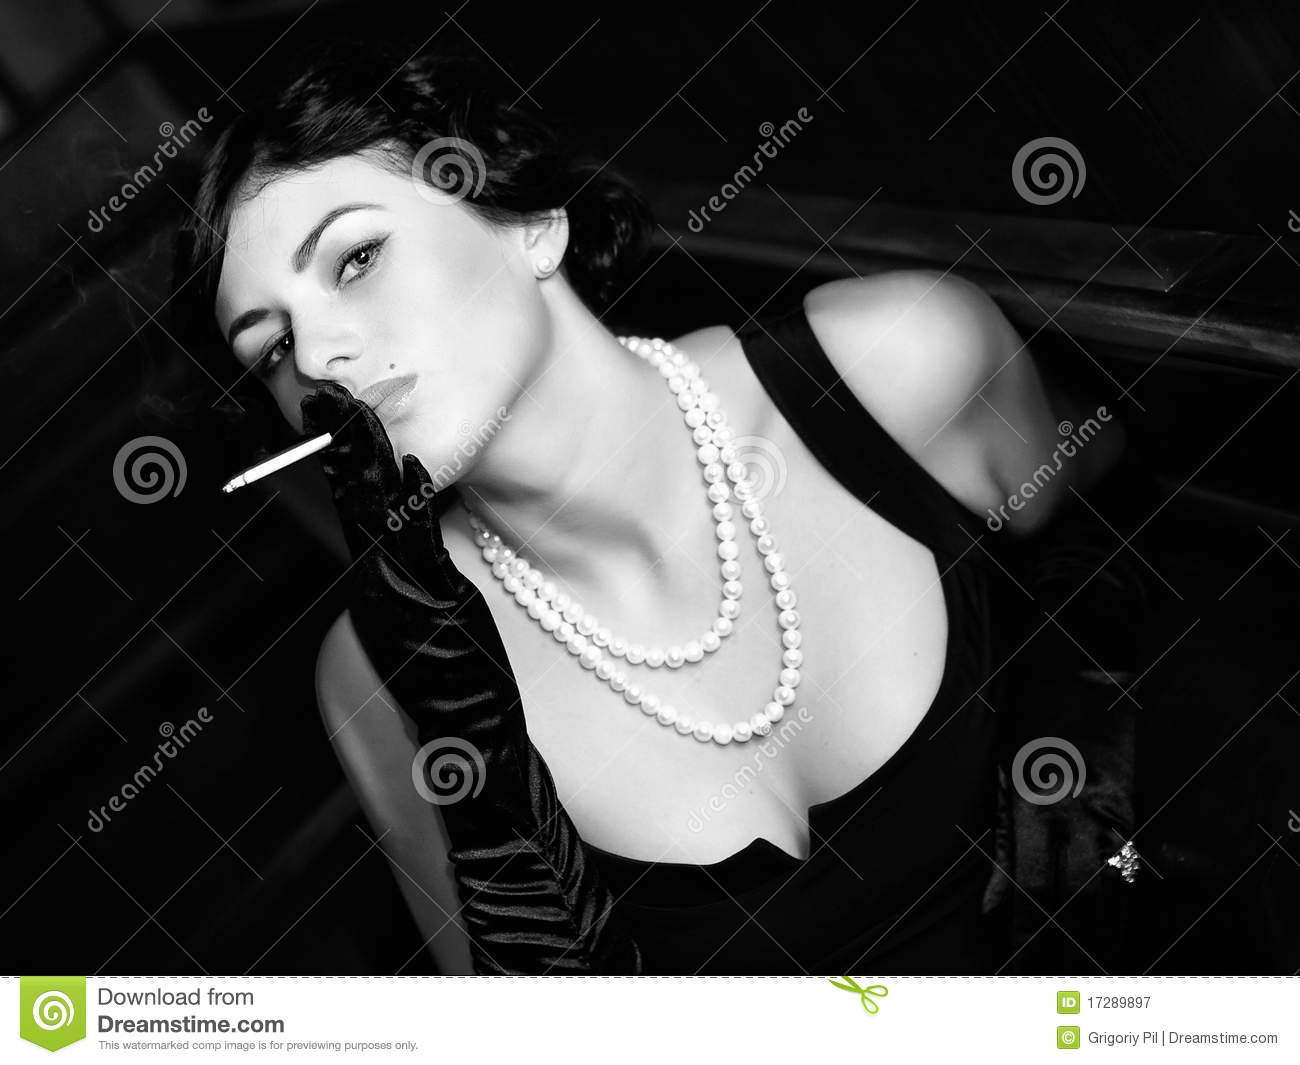 Luxurious lady with a cigarette. Vintage style.